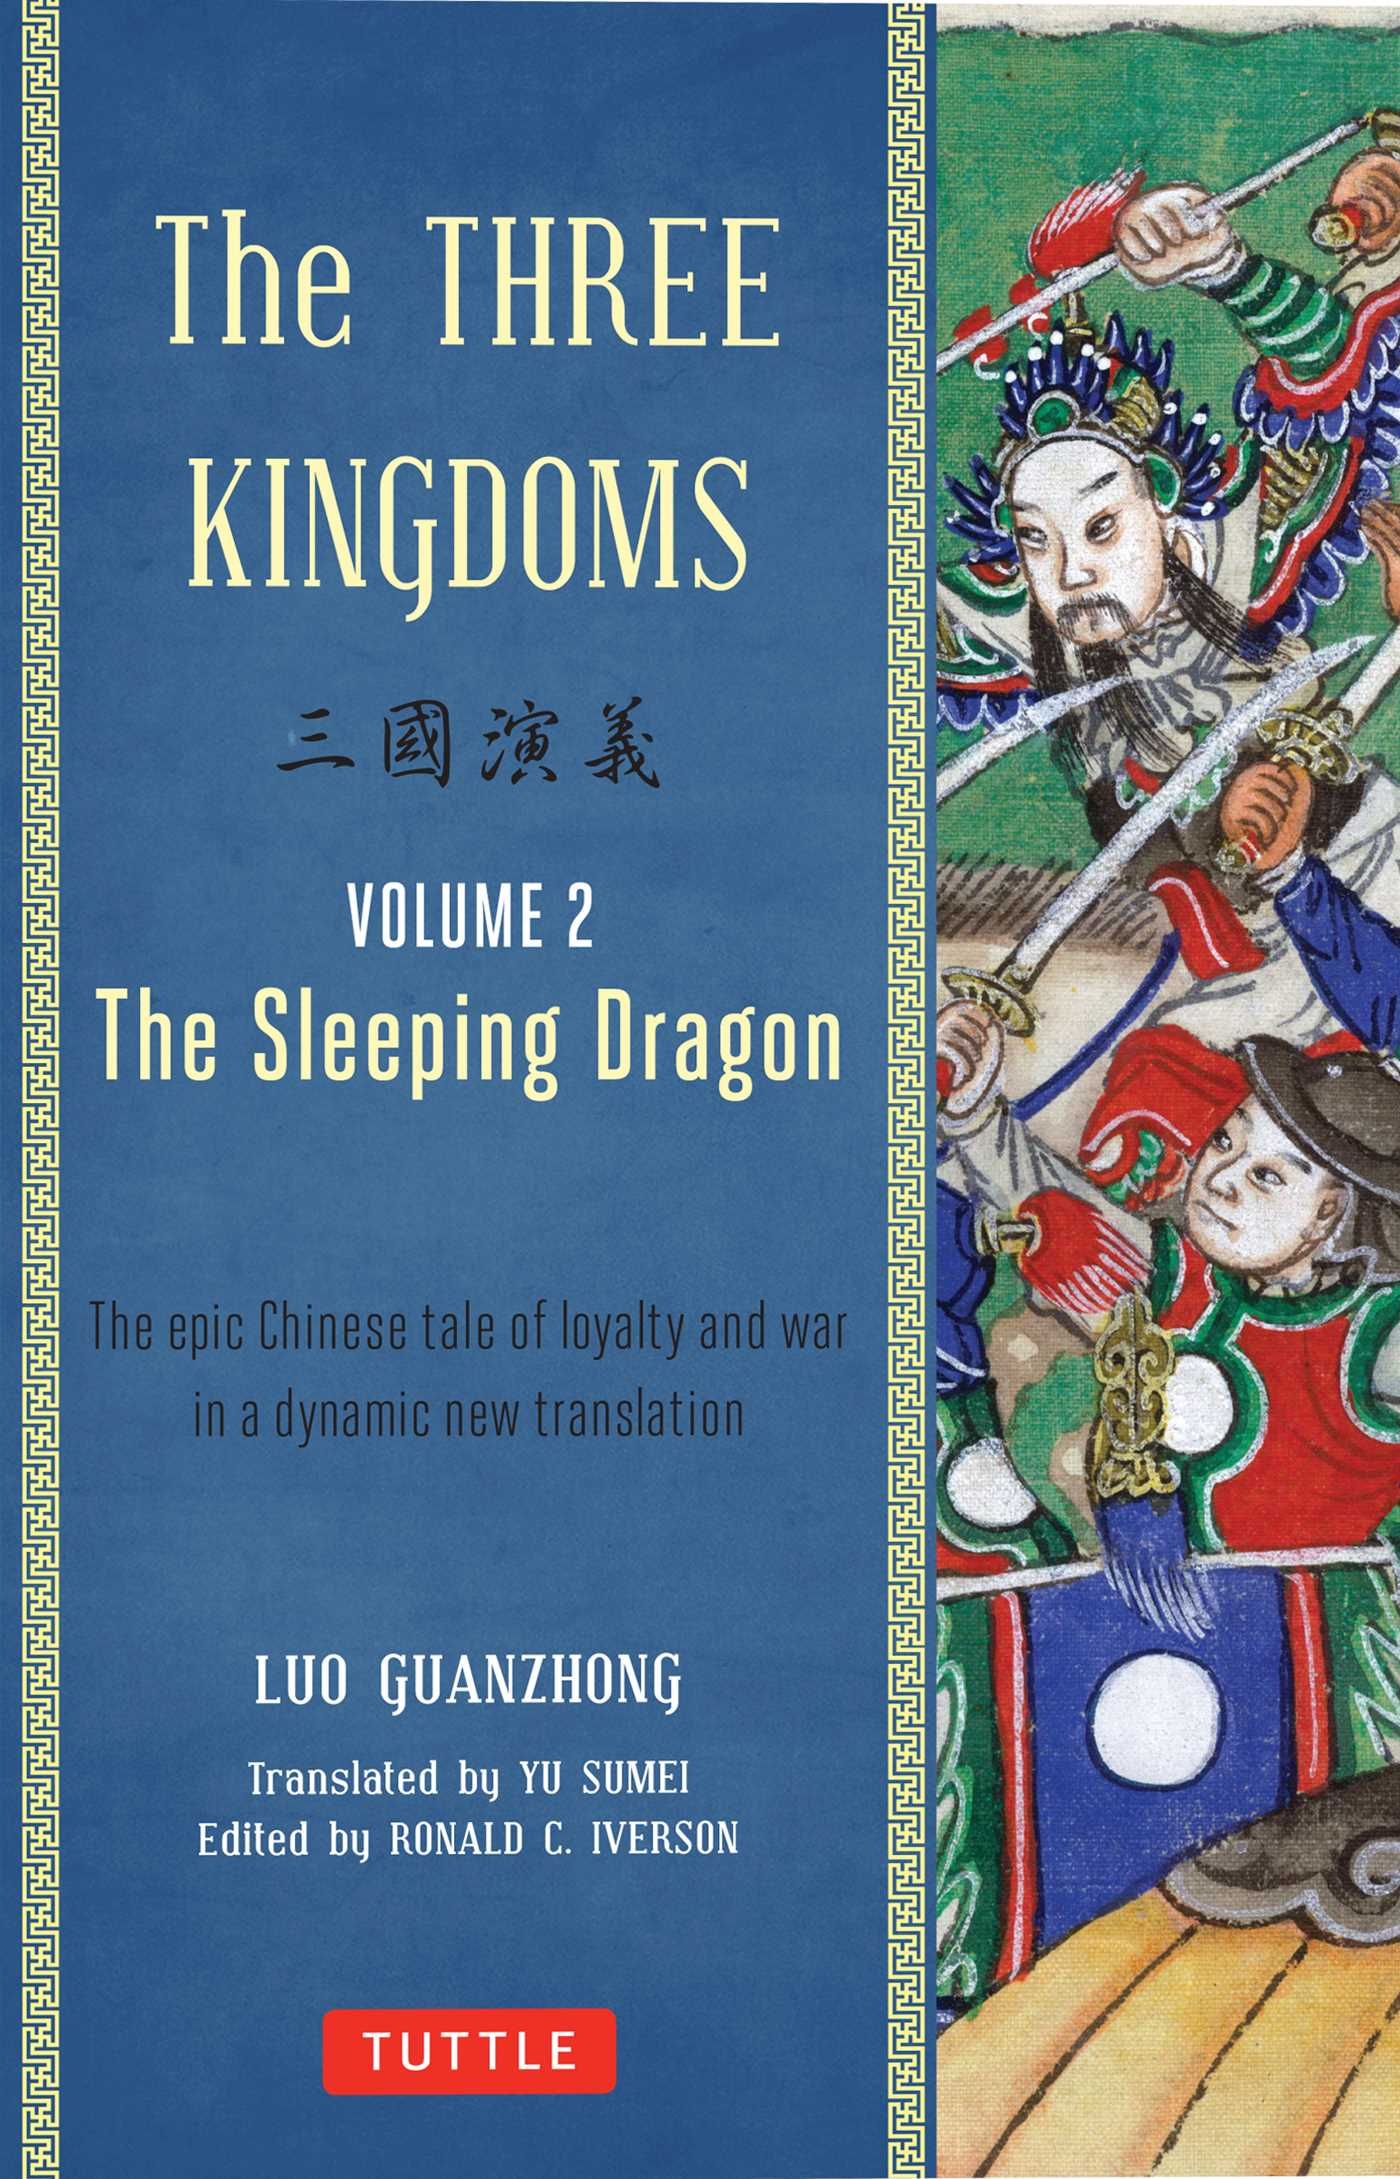 The-three-kingdoms-volume-2-the-sleeping-dragon-9780804843942_hr